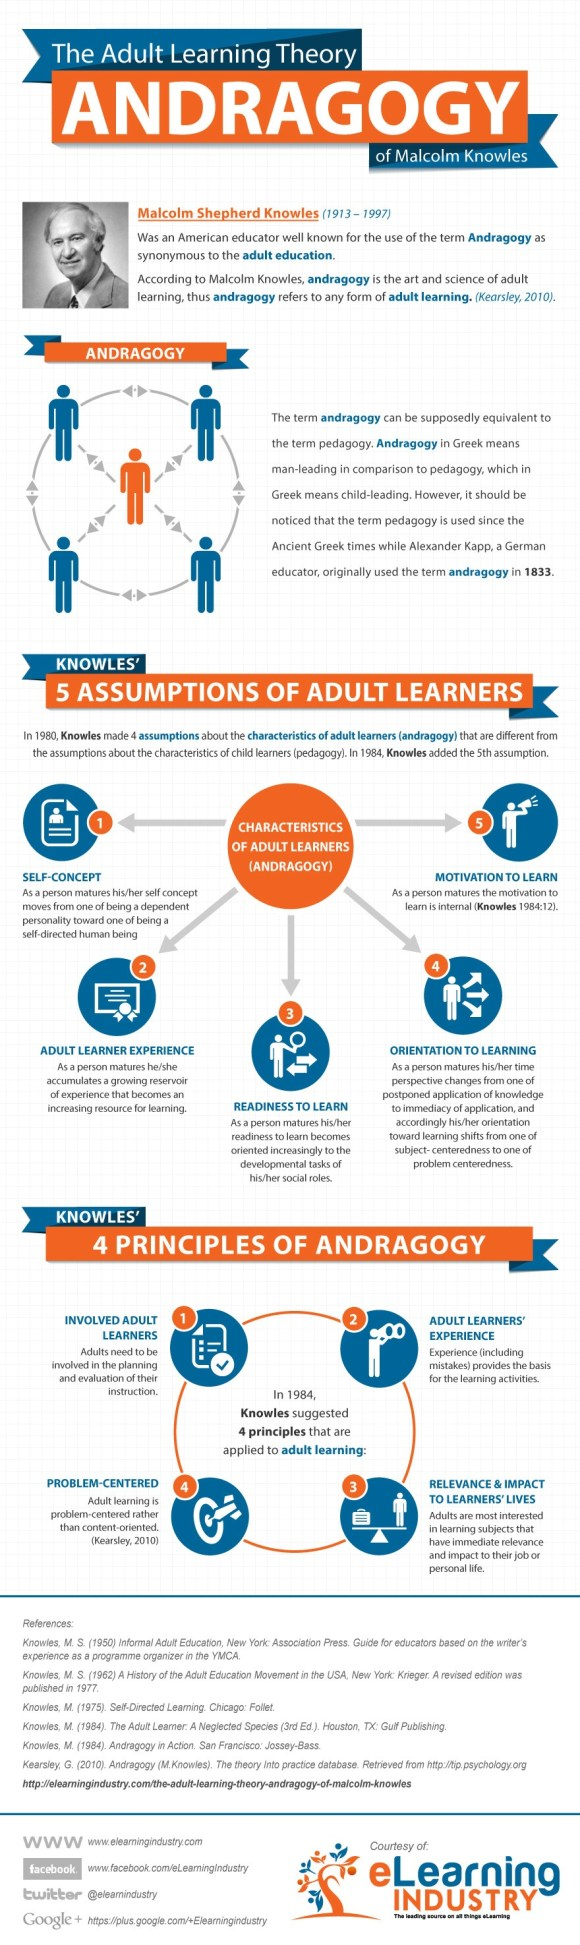 The Adult Learning Theory Infographic